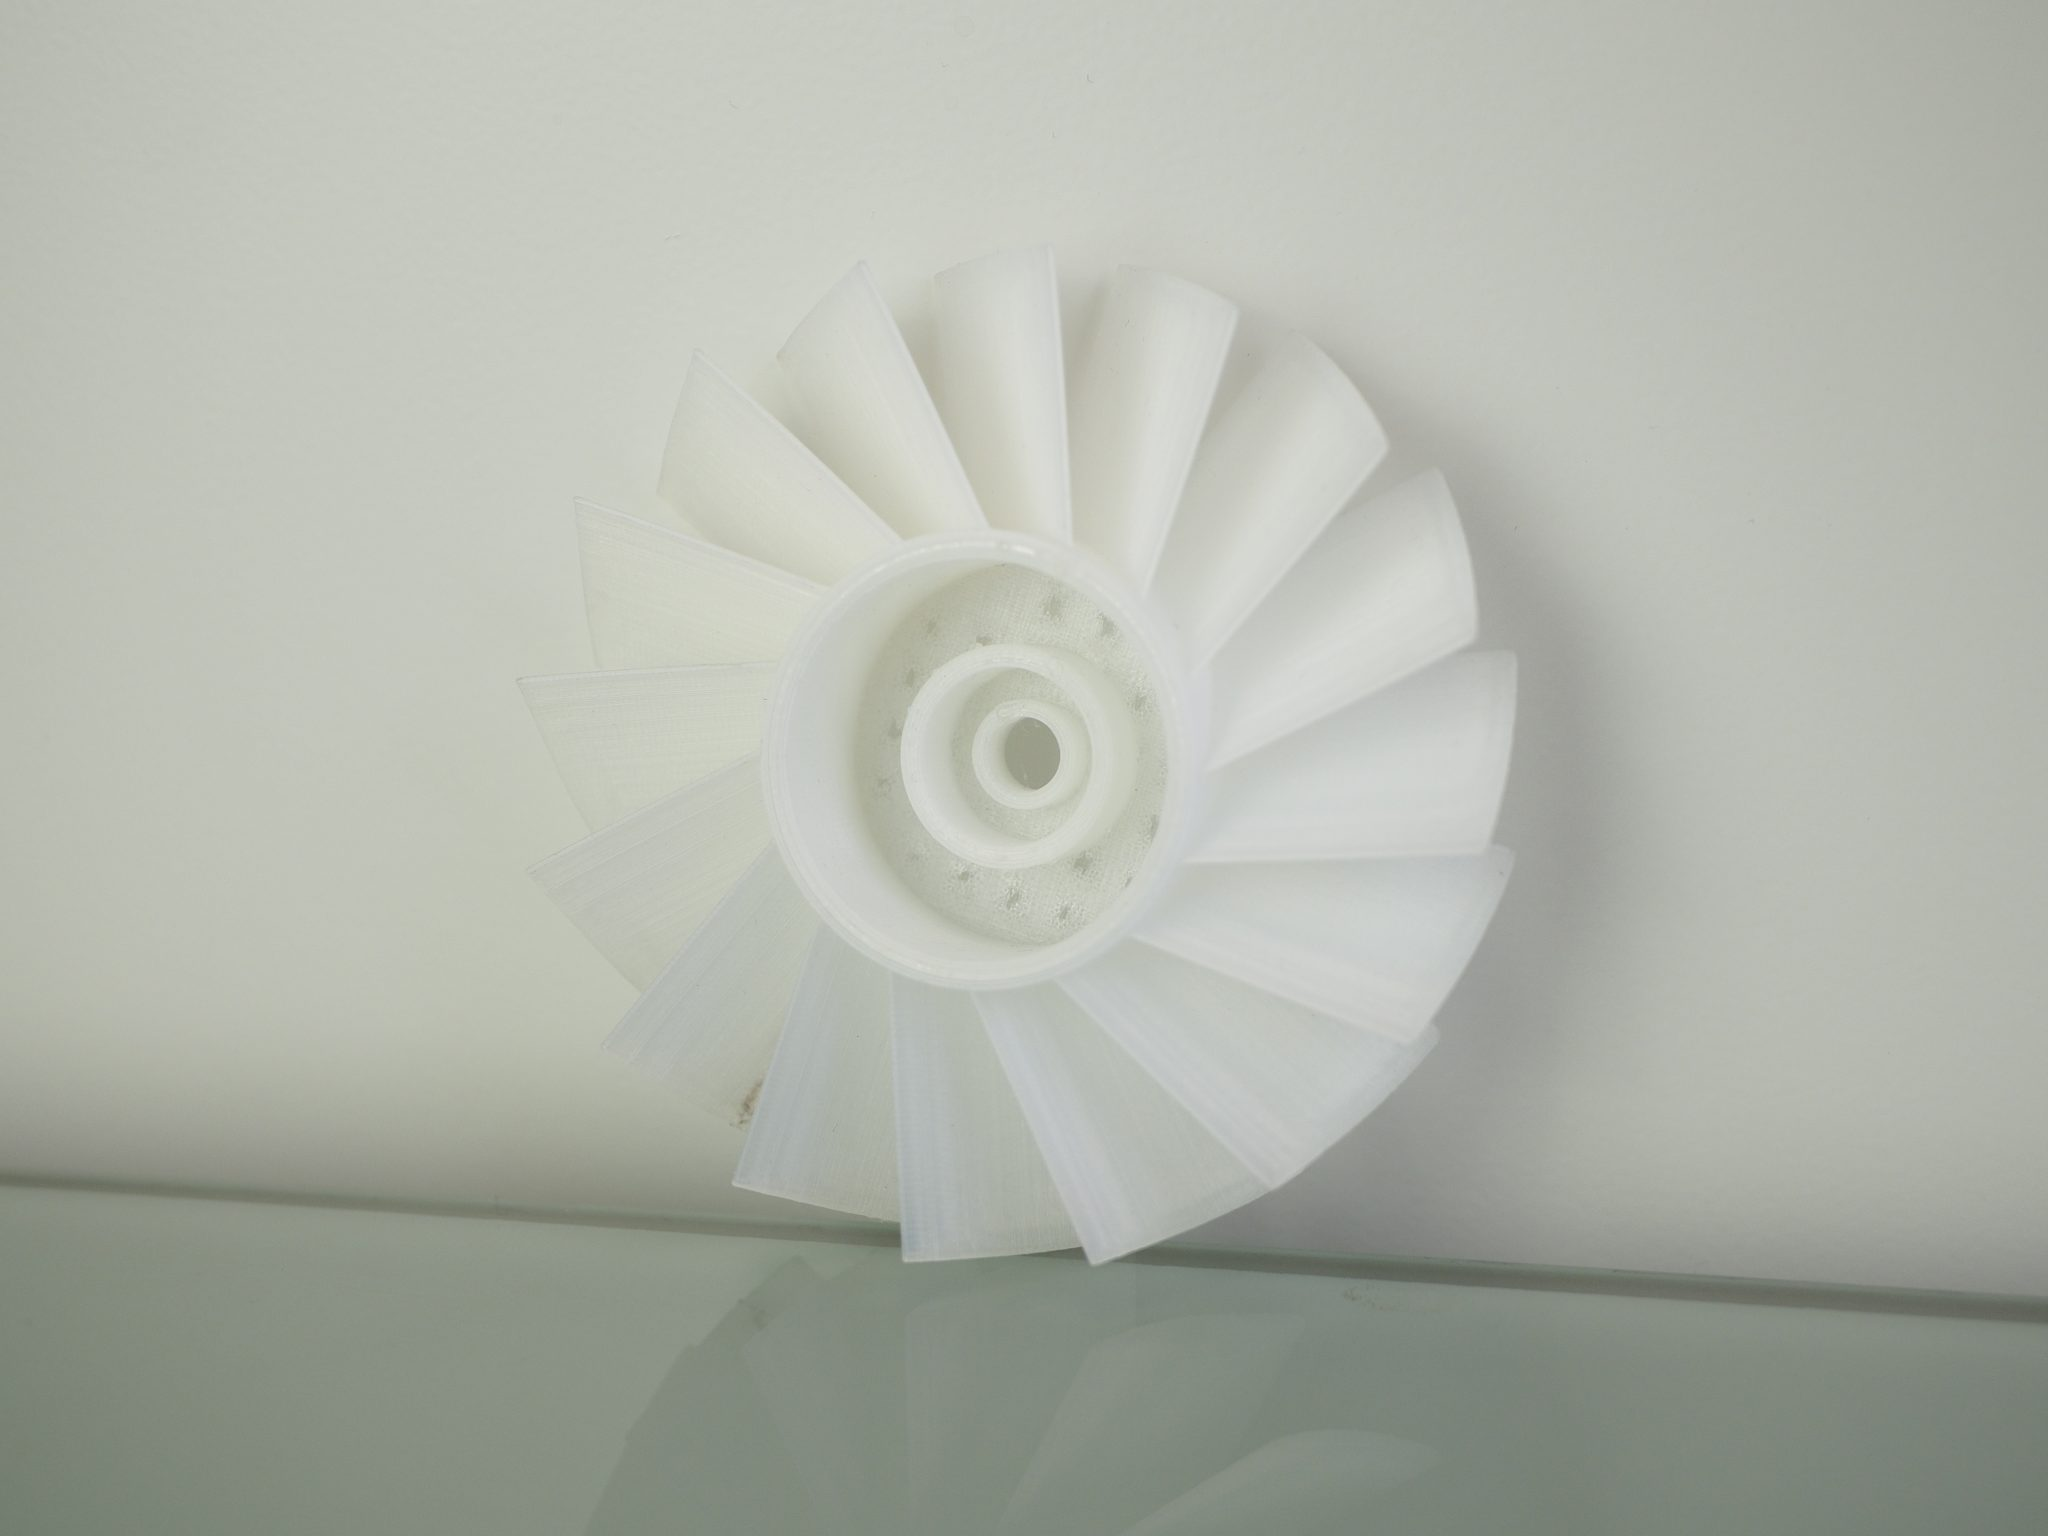 Test de turbine en nylon. Photo de l'industrie de l'impression 3D.